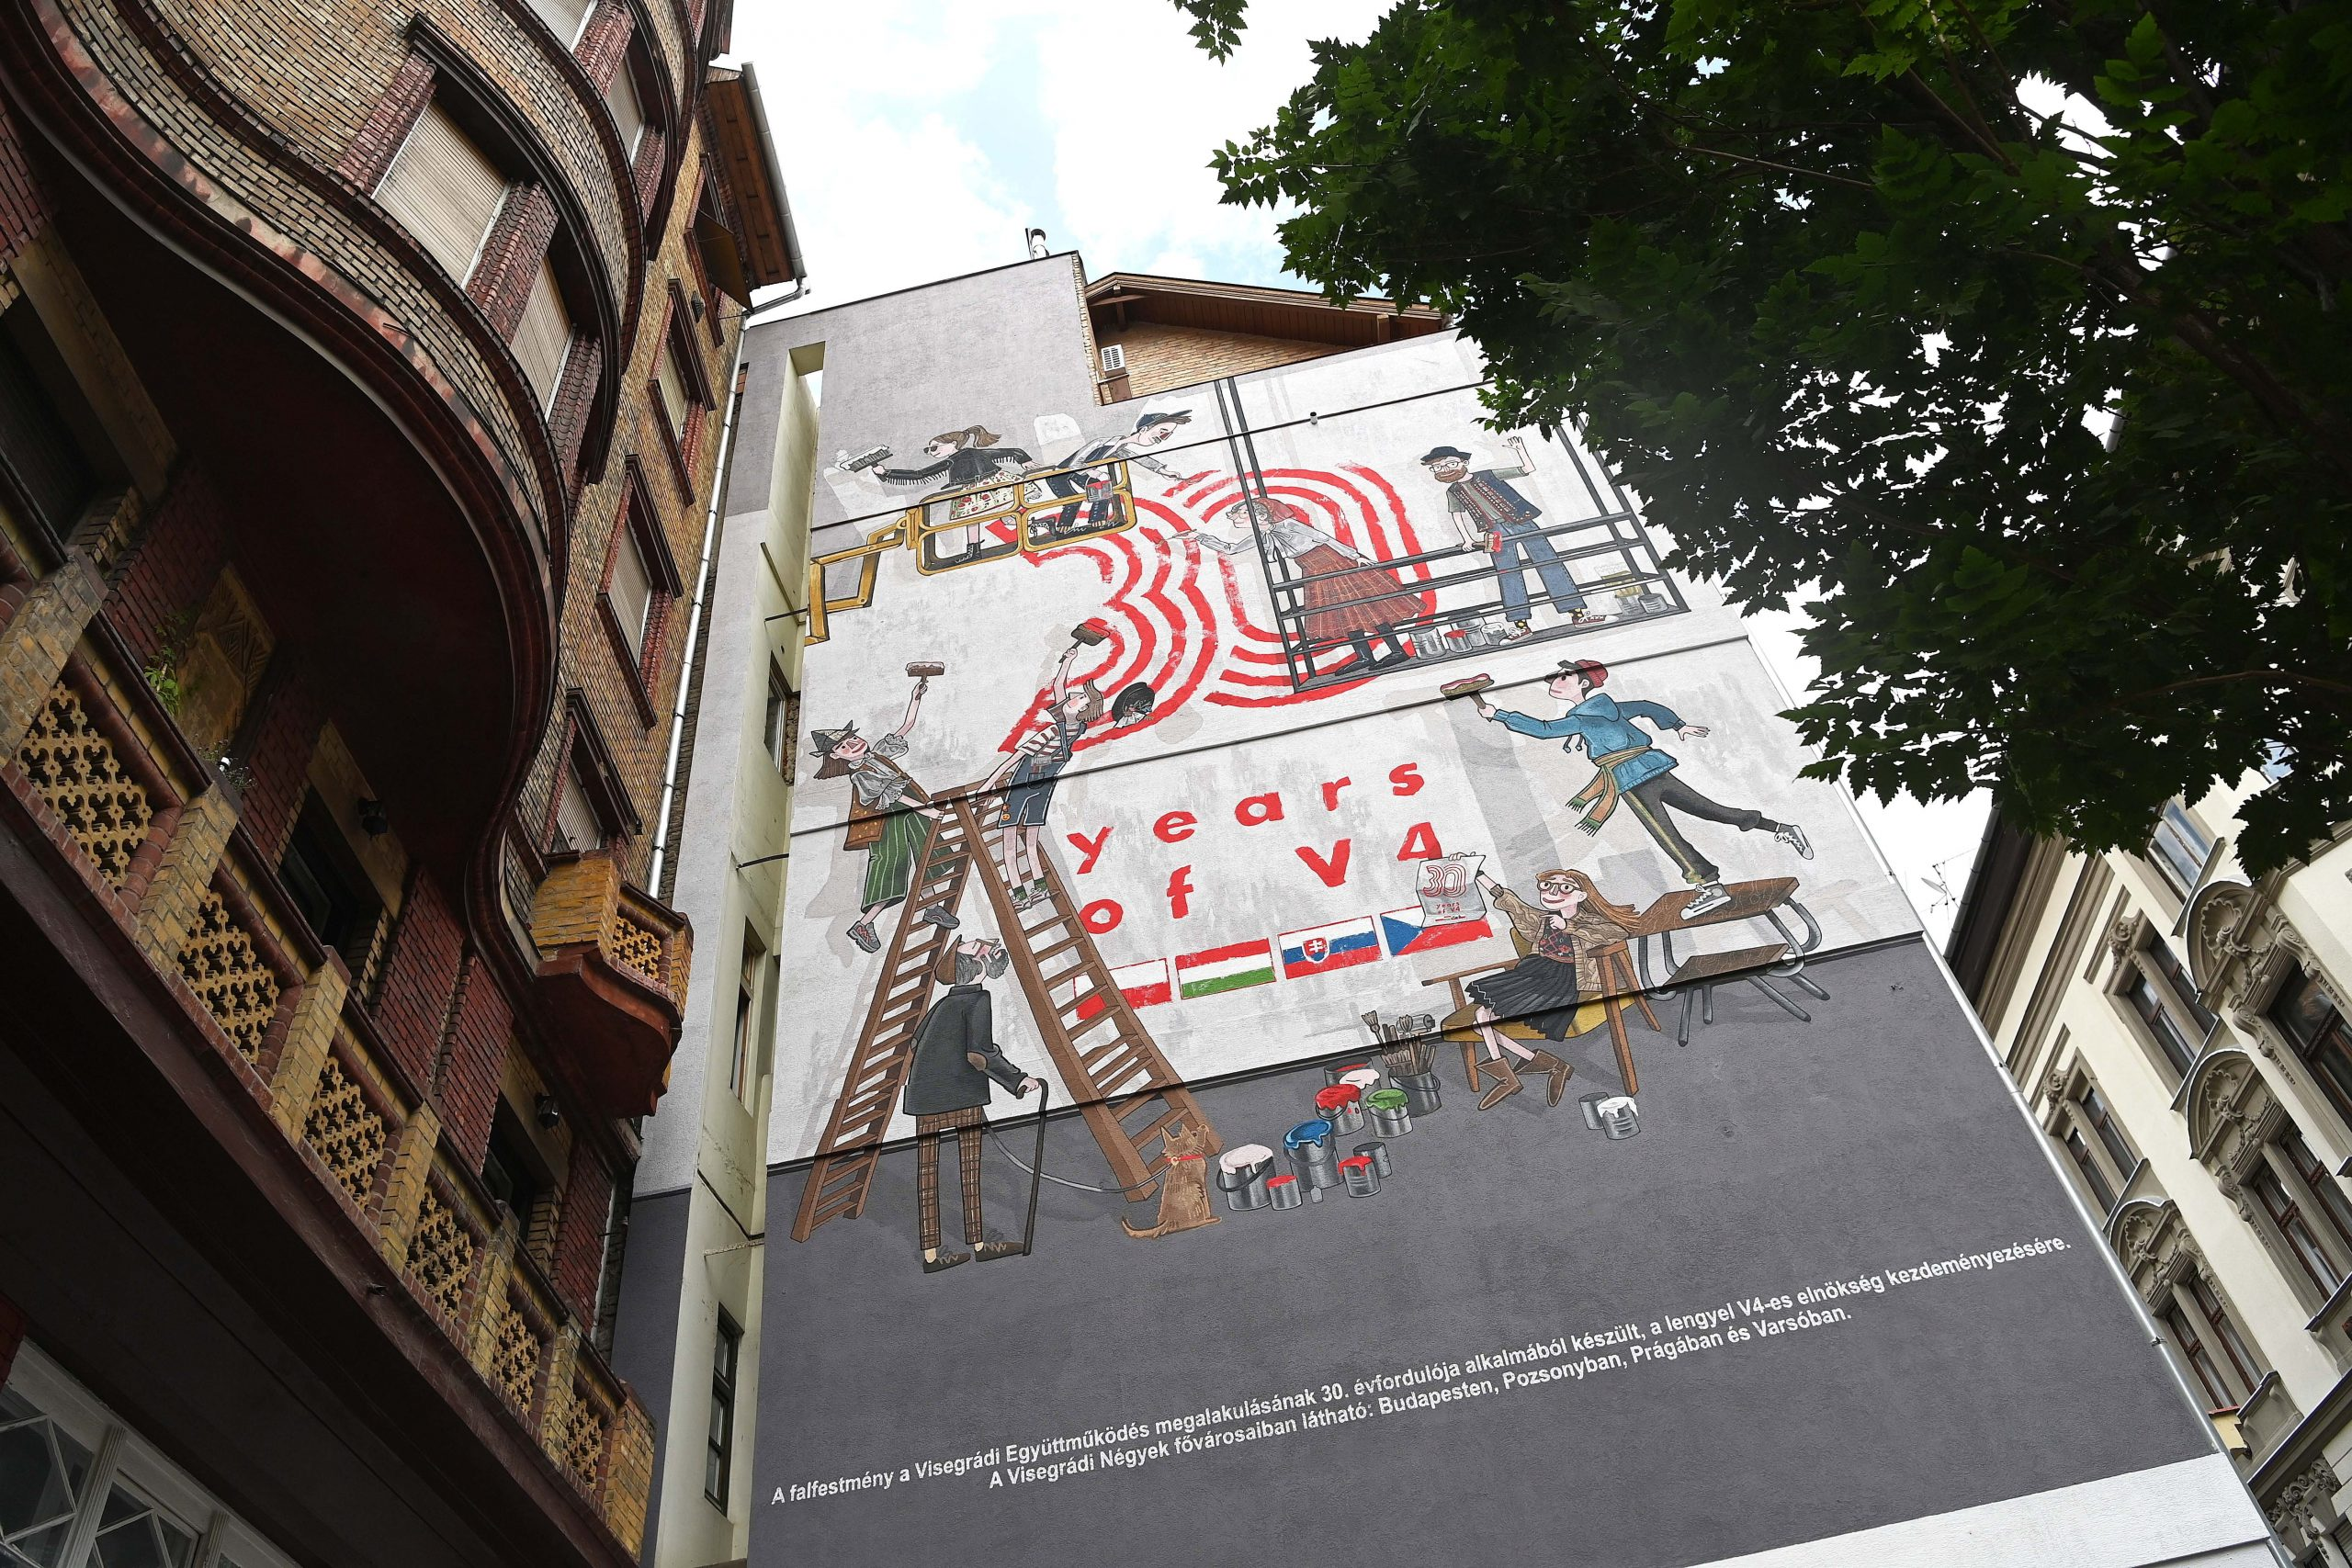 Mural Marking 30th Anniversary of Visegrad Group Inaugurated in Budapest